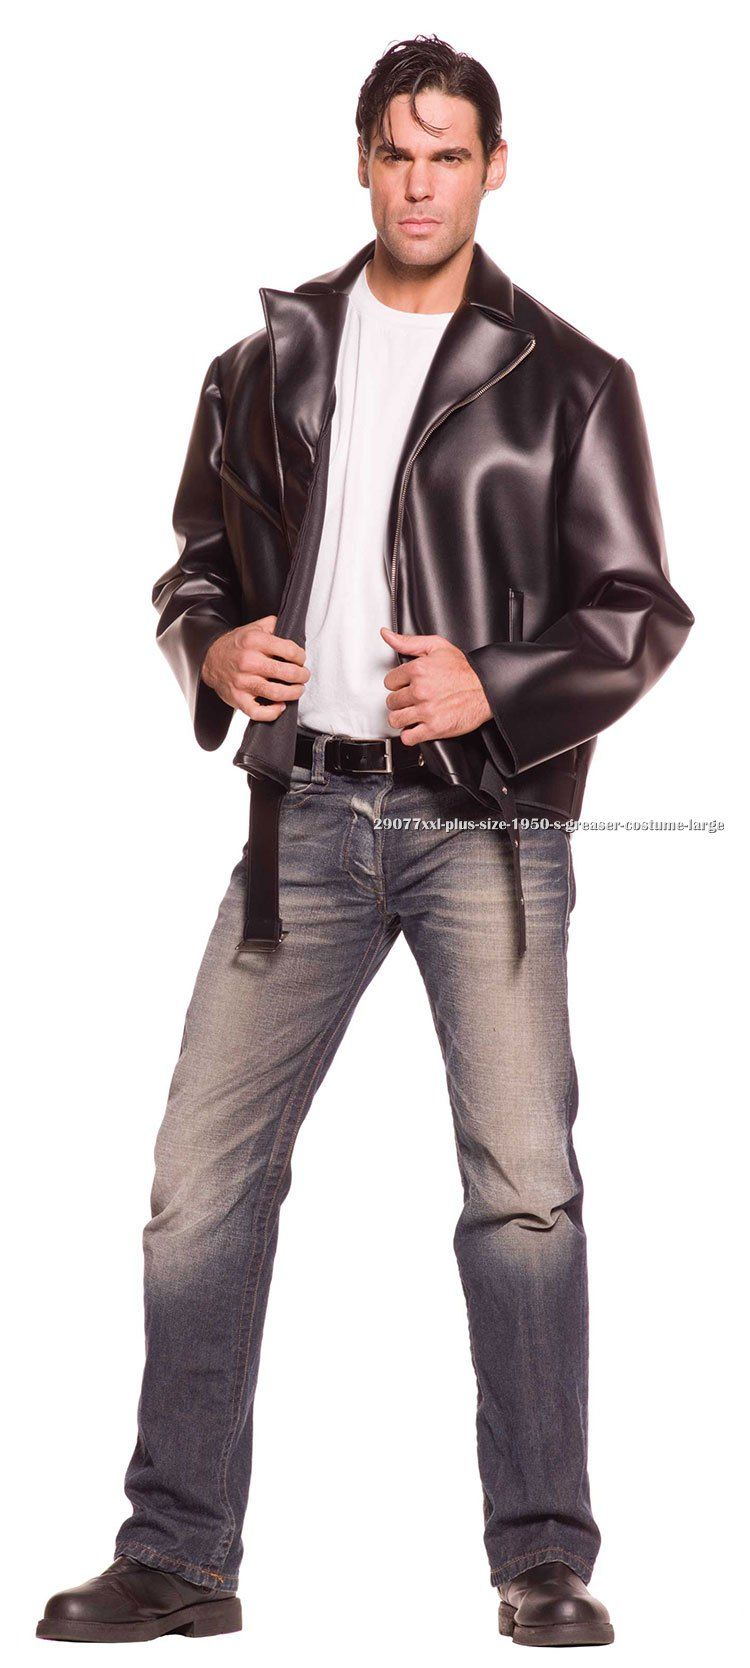 bd577226d Plus Size 1950's Greaser Costume,$41.22 | Costumes in 2019 | Greaser ...